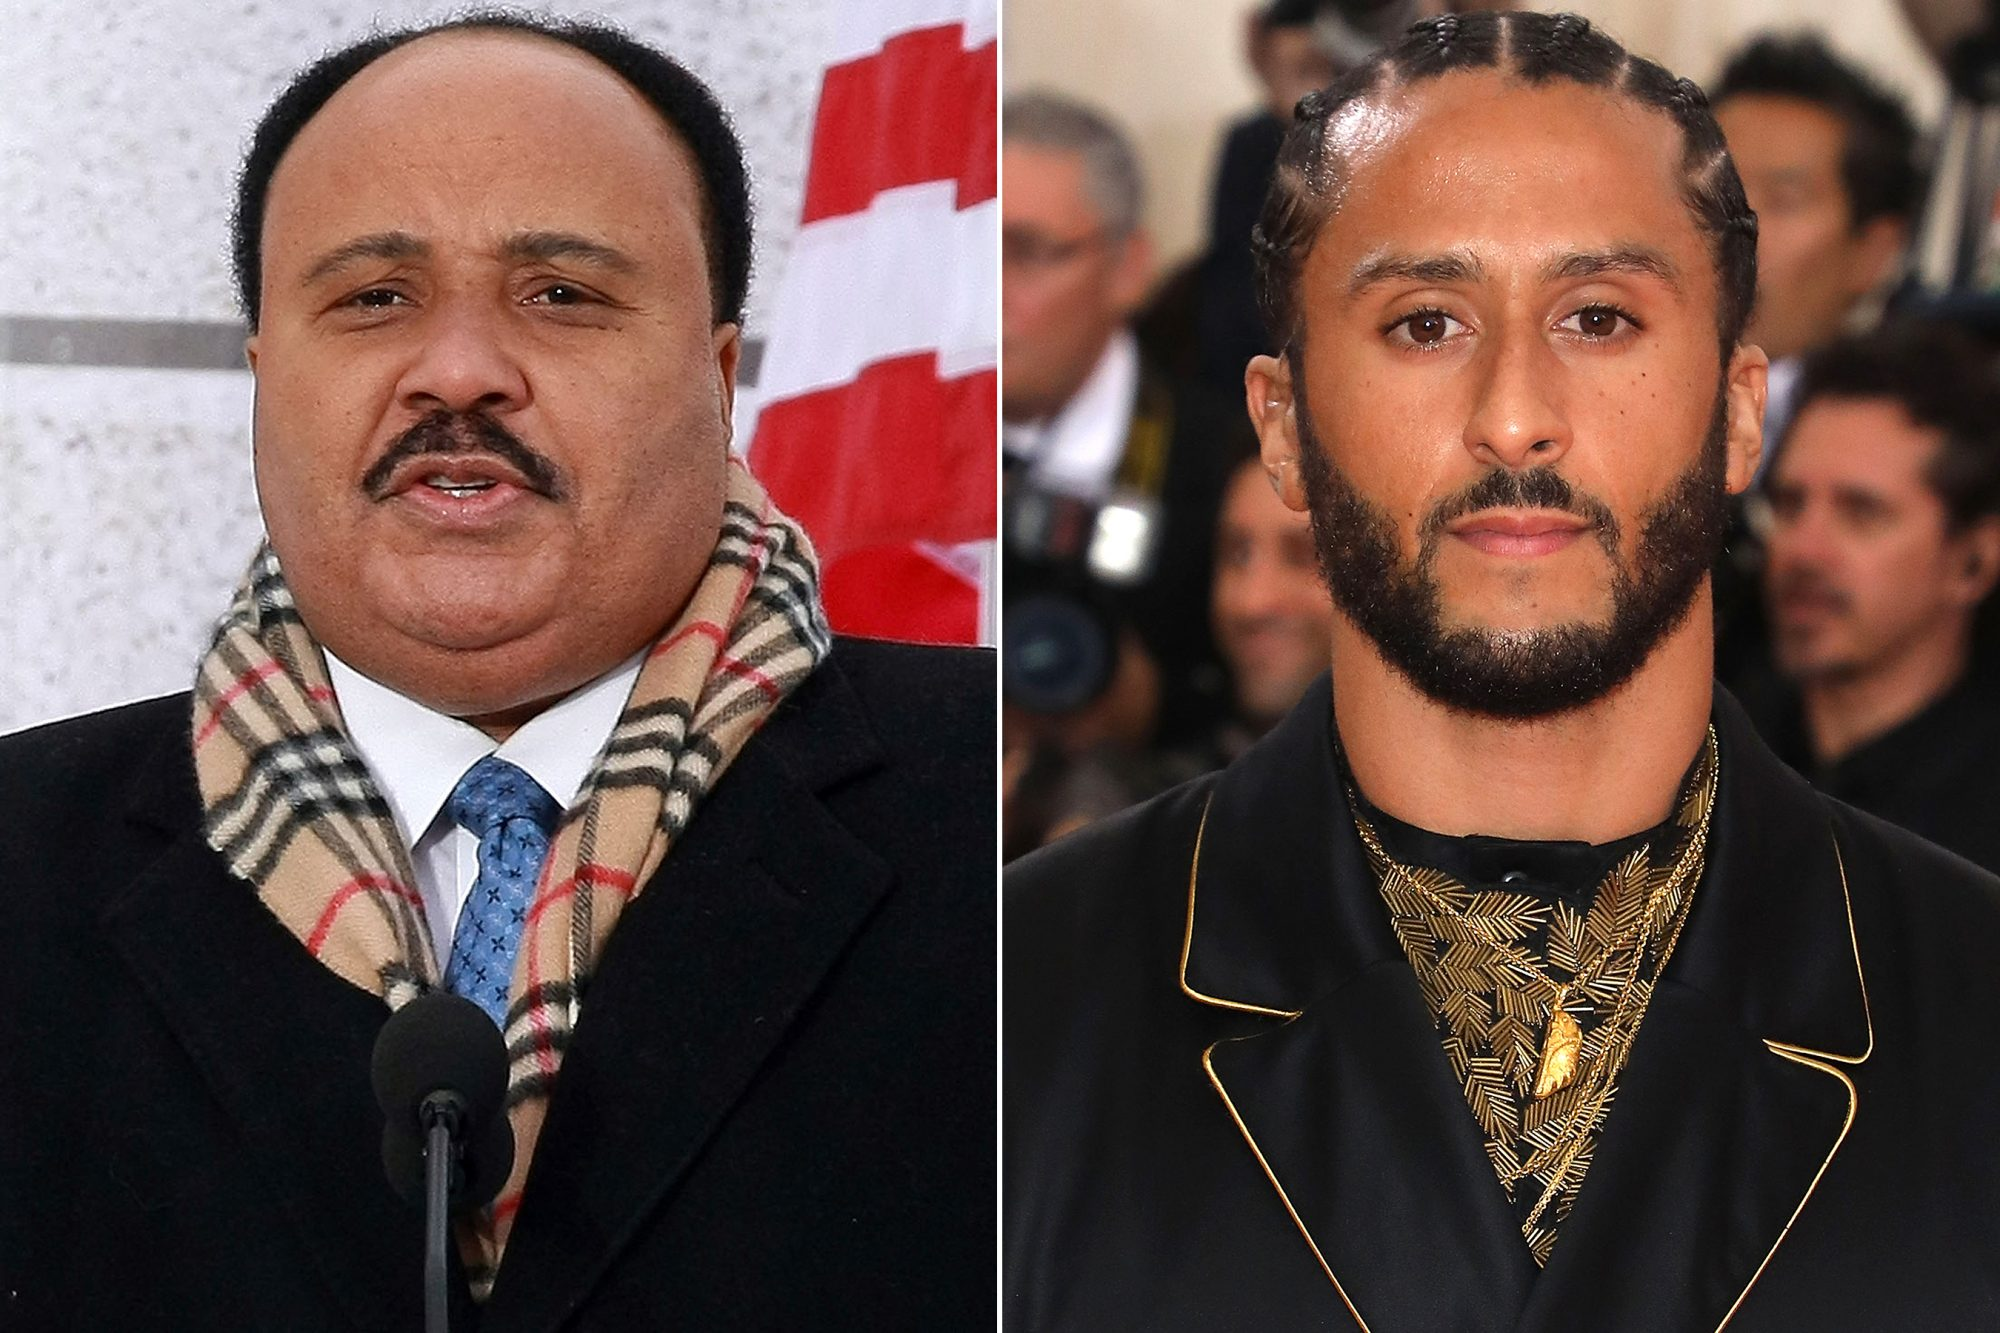 Martin Luther King III, Colin Kaepernick